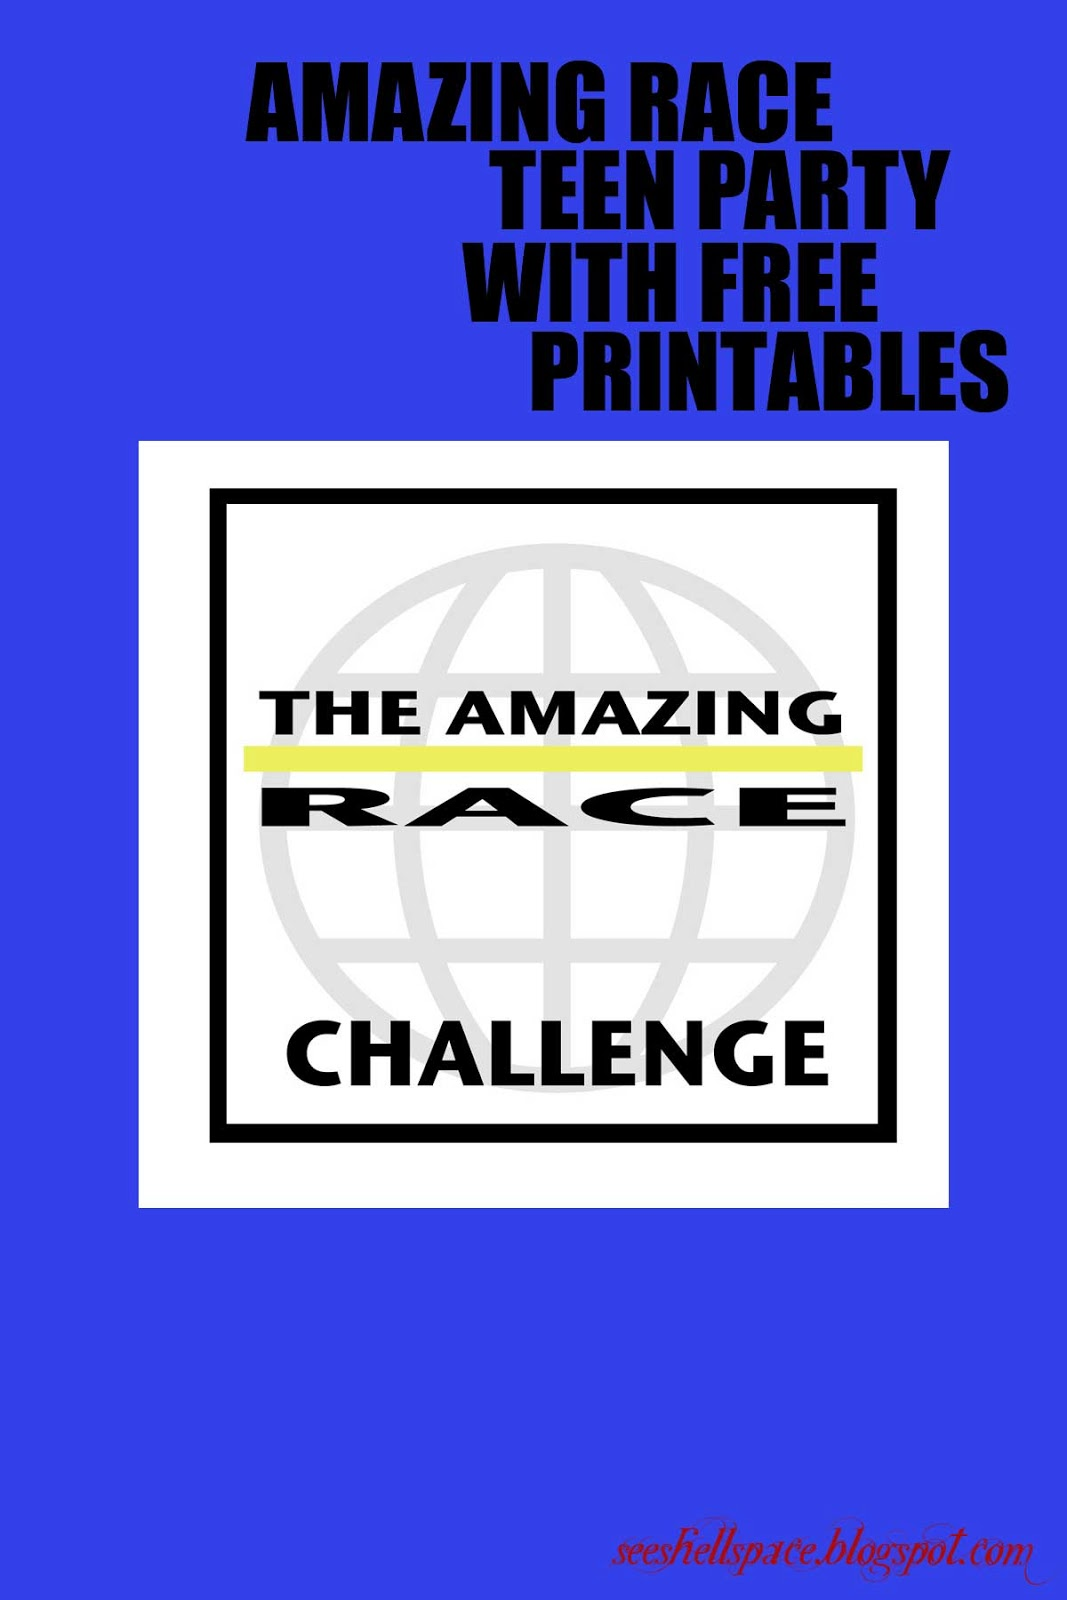 amazing race birthday party templates - seeshellspace it was an amazing race teen birthday party